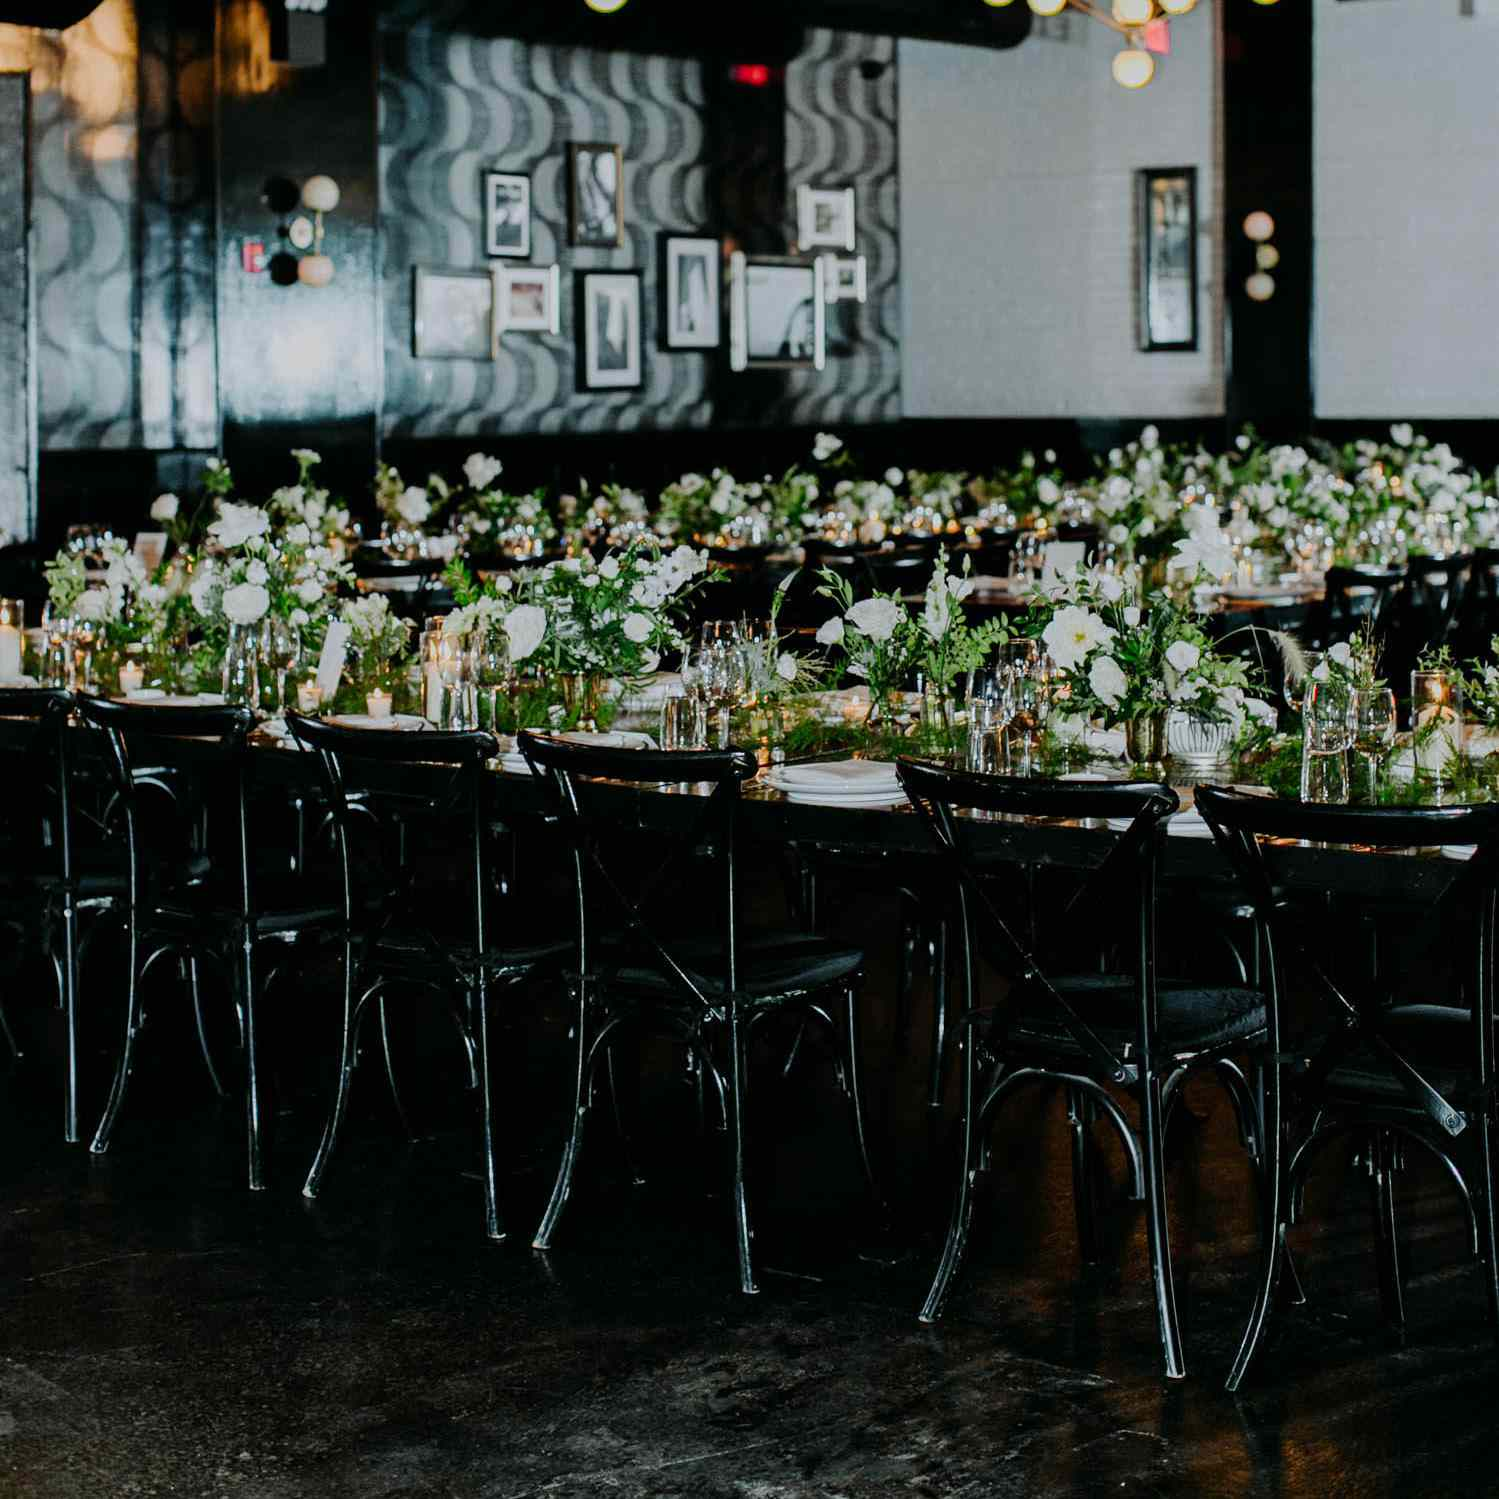 trend alert: 23 ways to use black details in your wedding decor